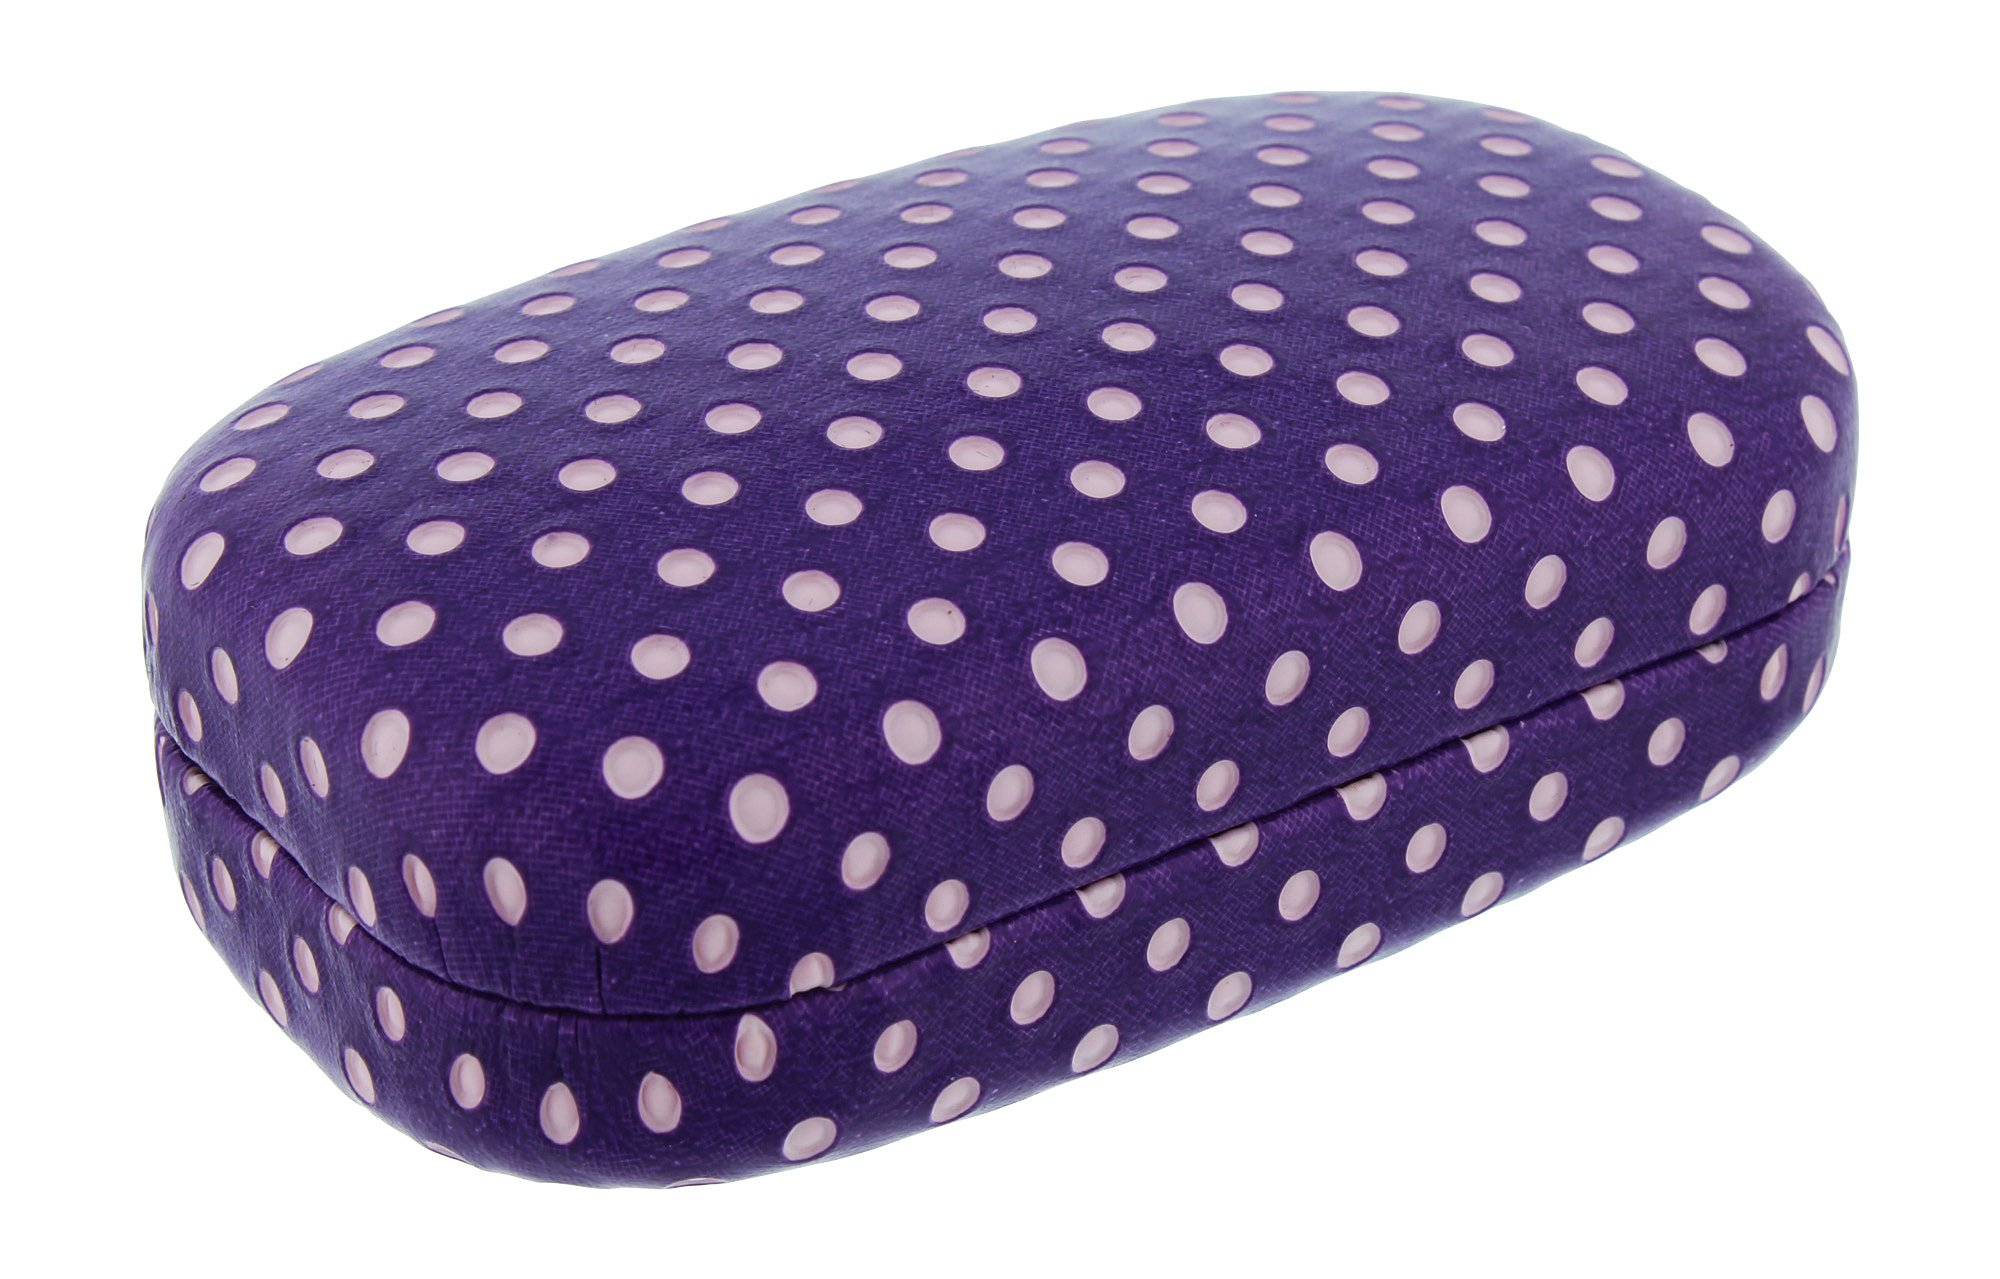 Hard Mod Purple And White Polka Dot With Interior Mirror Contact Lens Travel Case